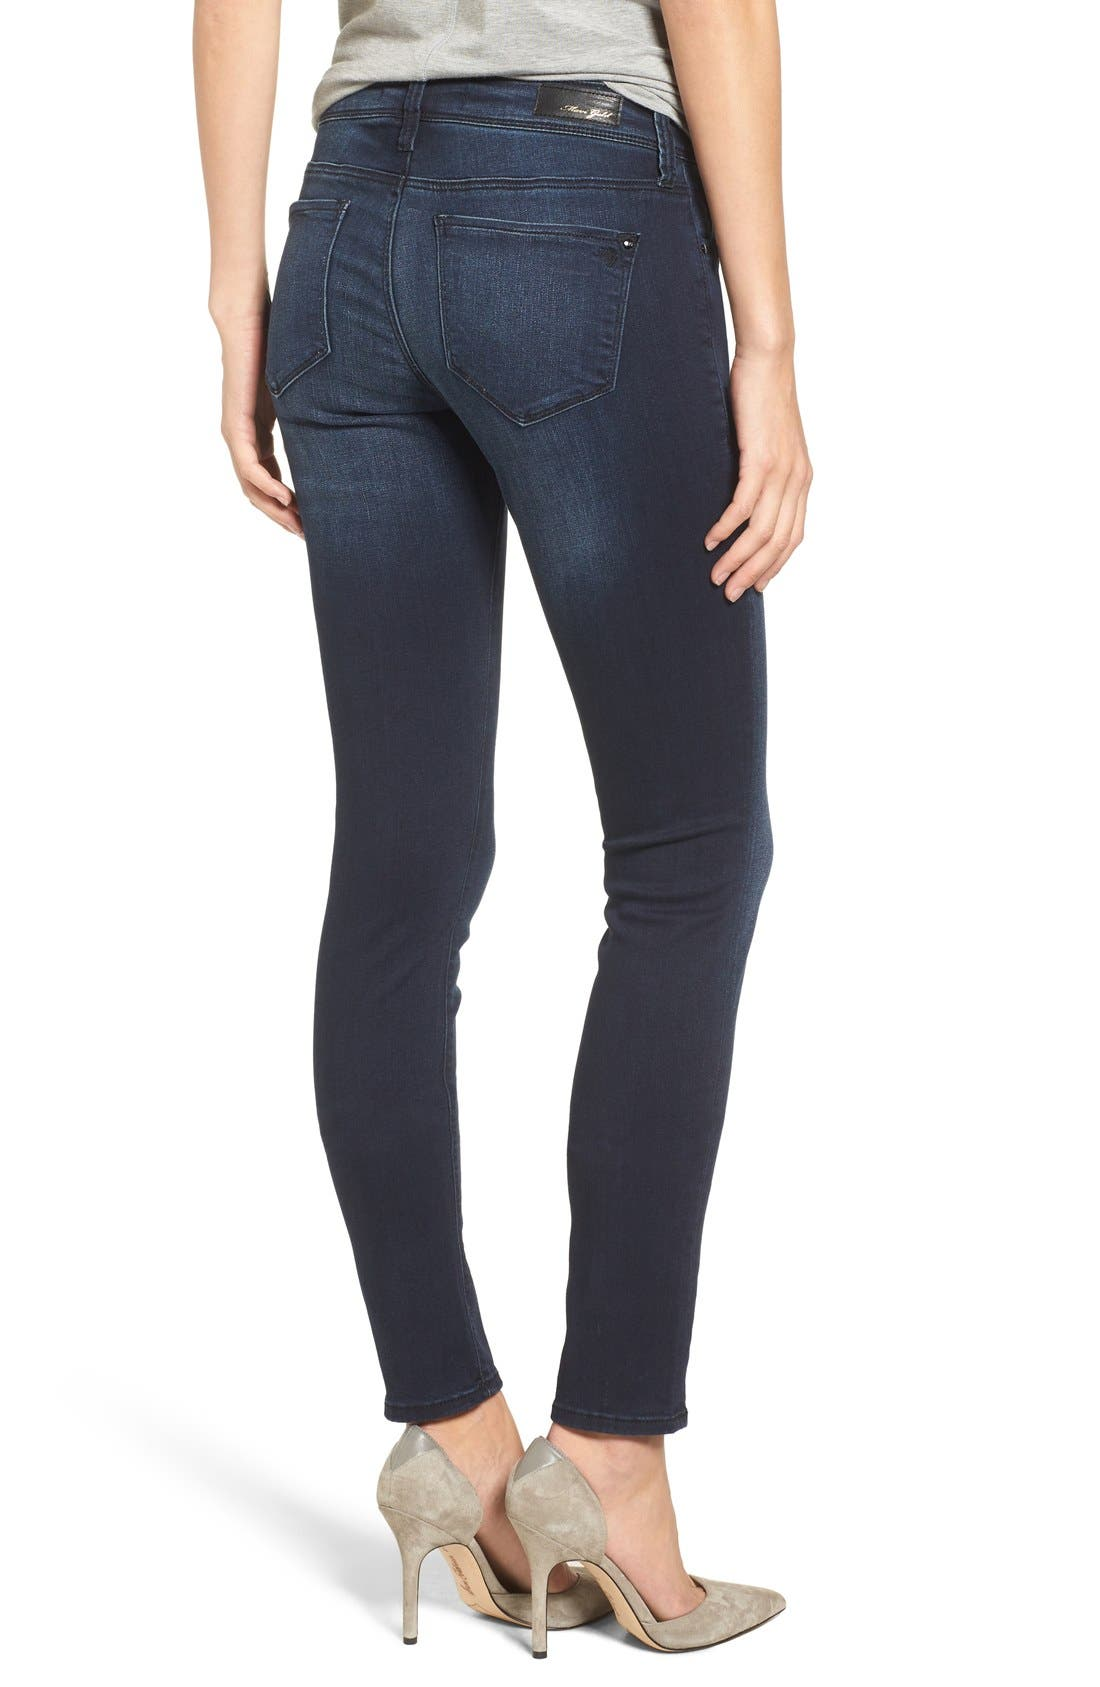 Alternate Image 2  - Mavi Jeans Gold Alexa Stretch Skinny Jeans (Deep Feather) (Regular & Petite)